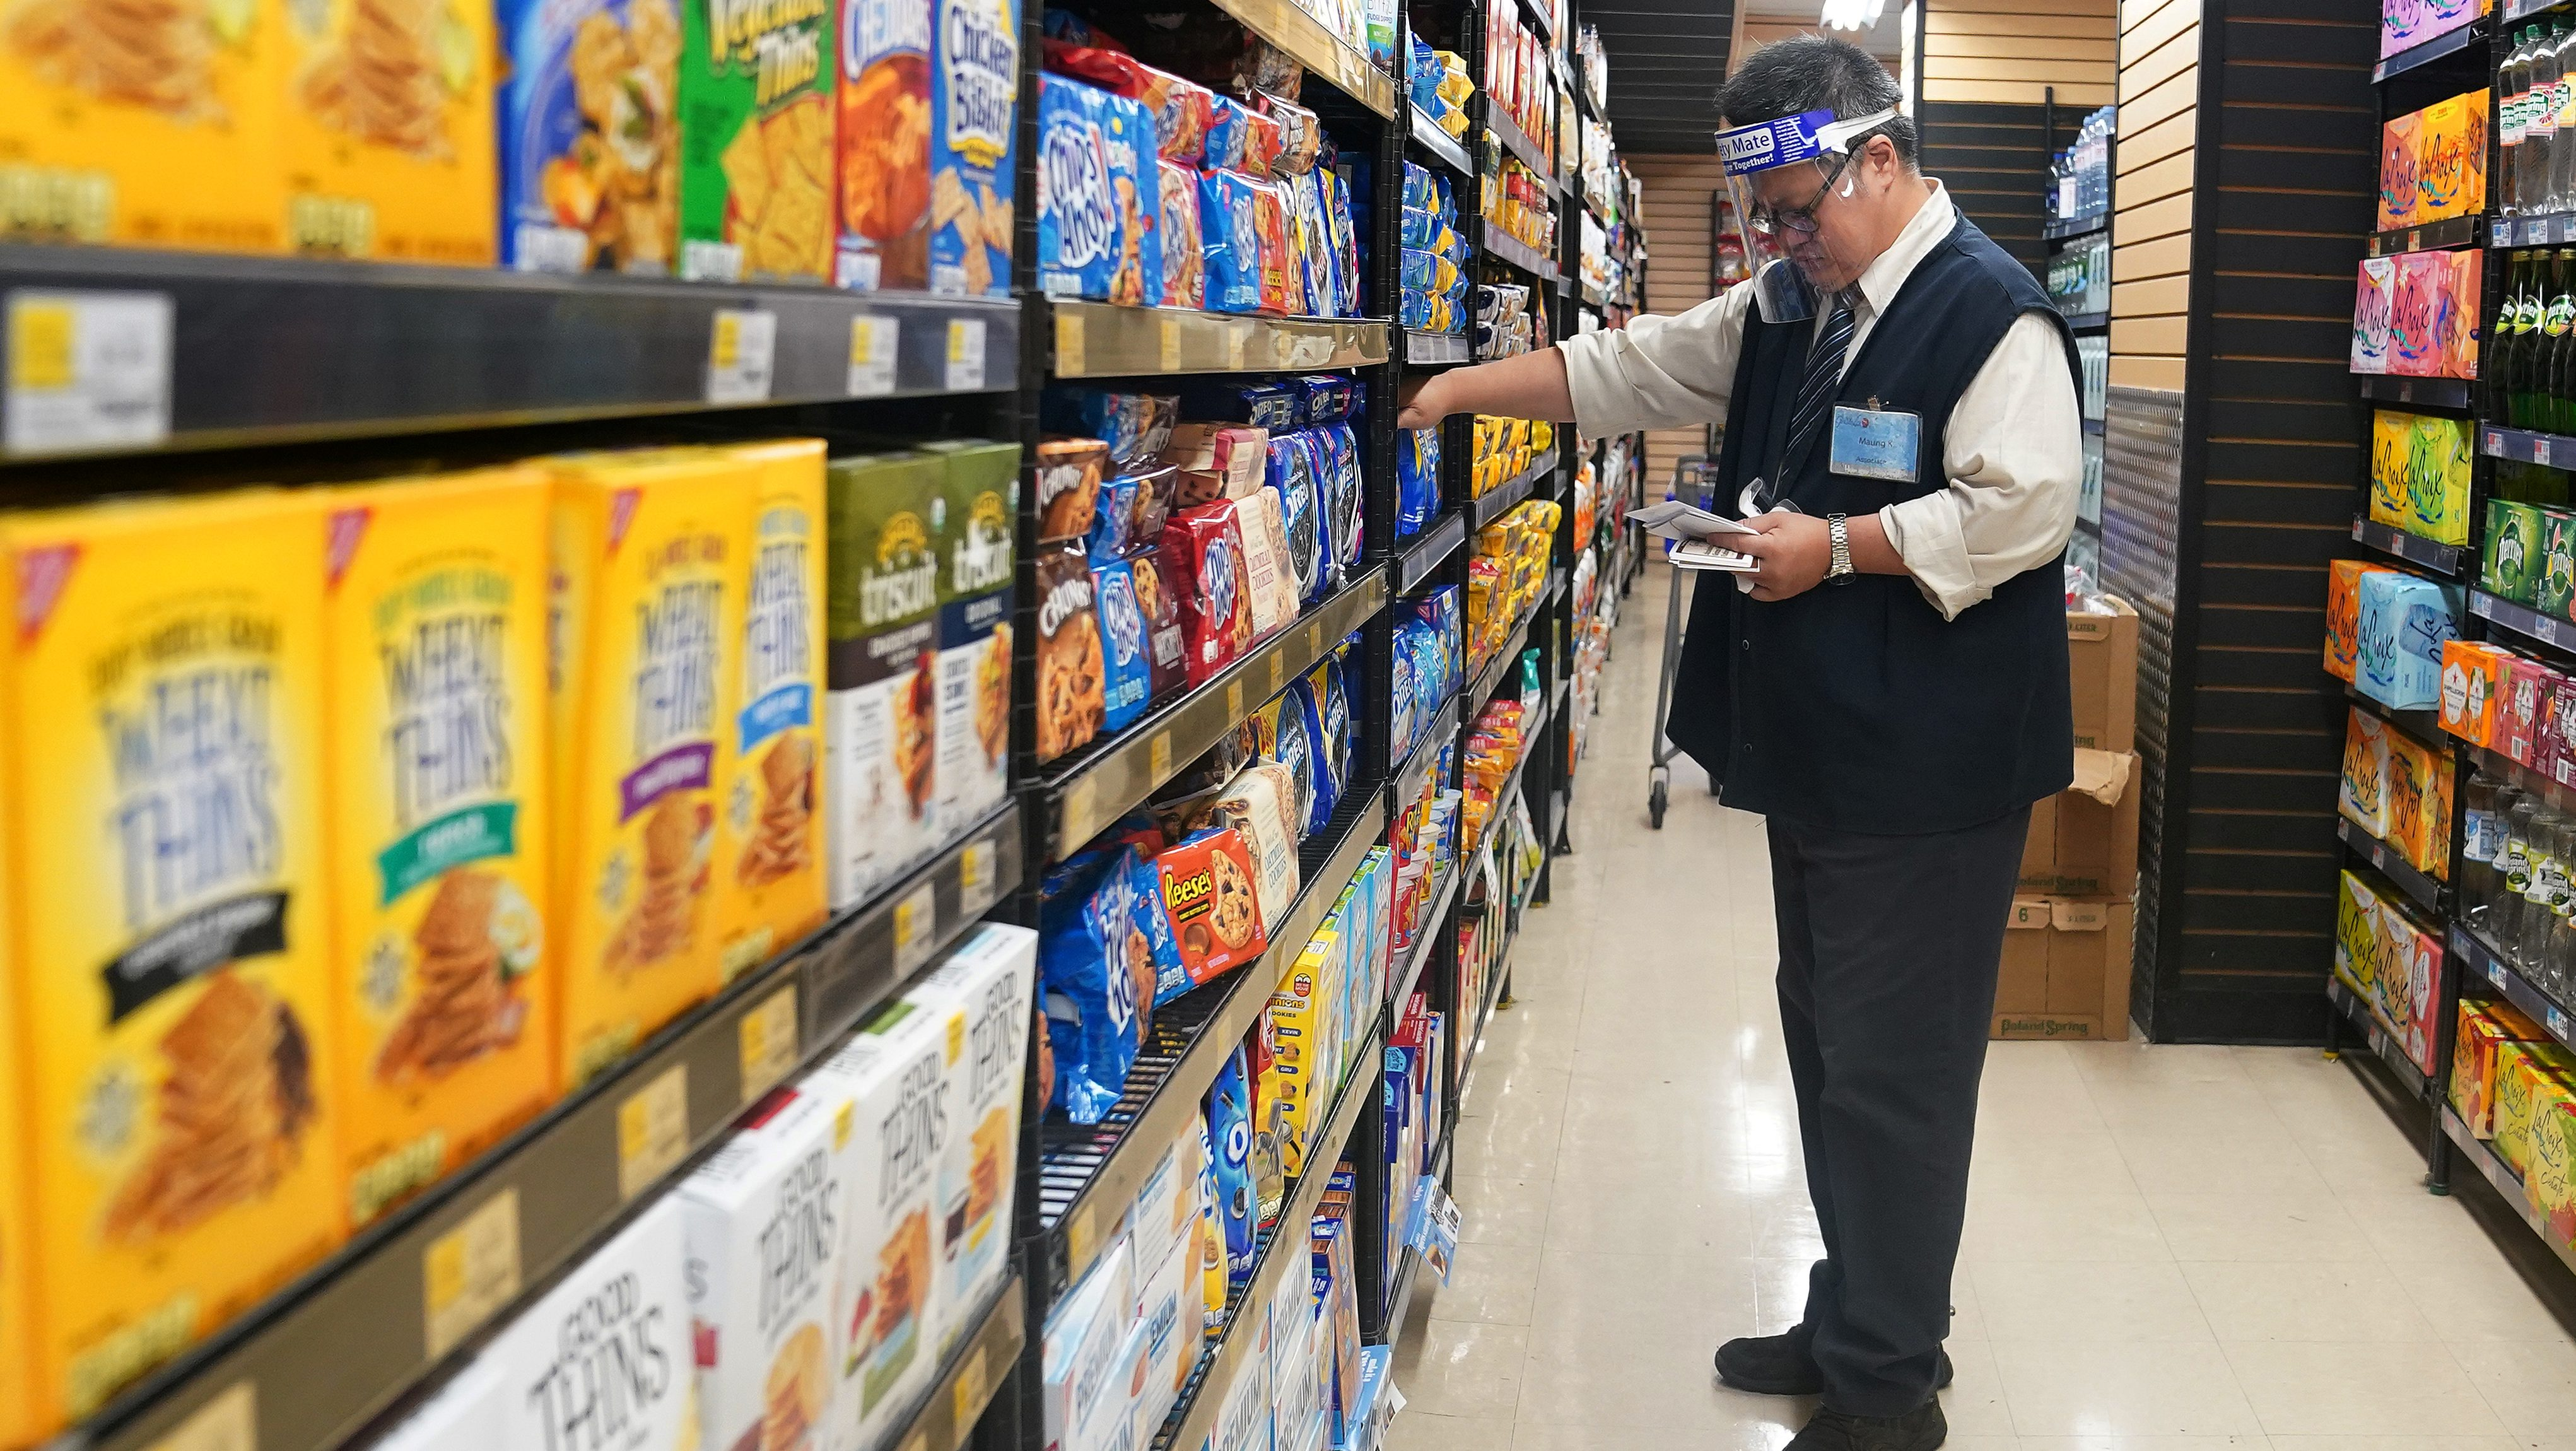 A worker with a face shield checks products on the shelf of a grocery store in the Manhattan borough of New York City, New York, U.S., August 7, 2020.